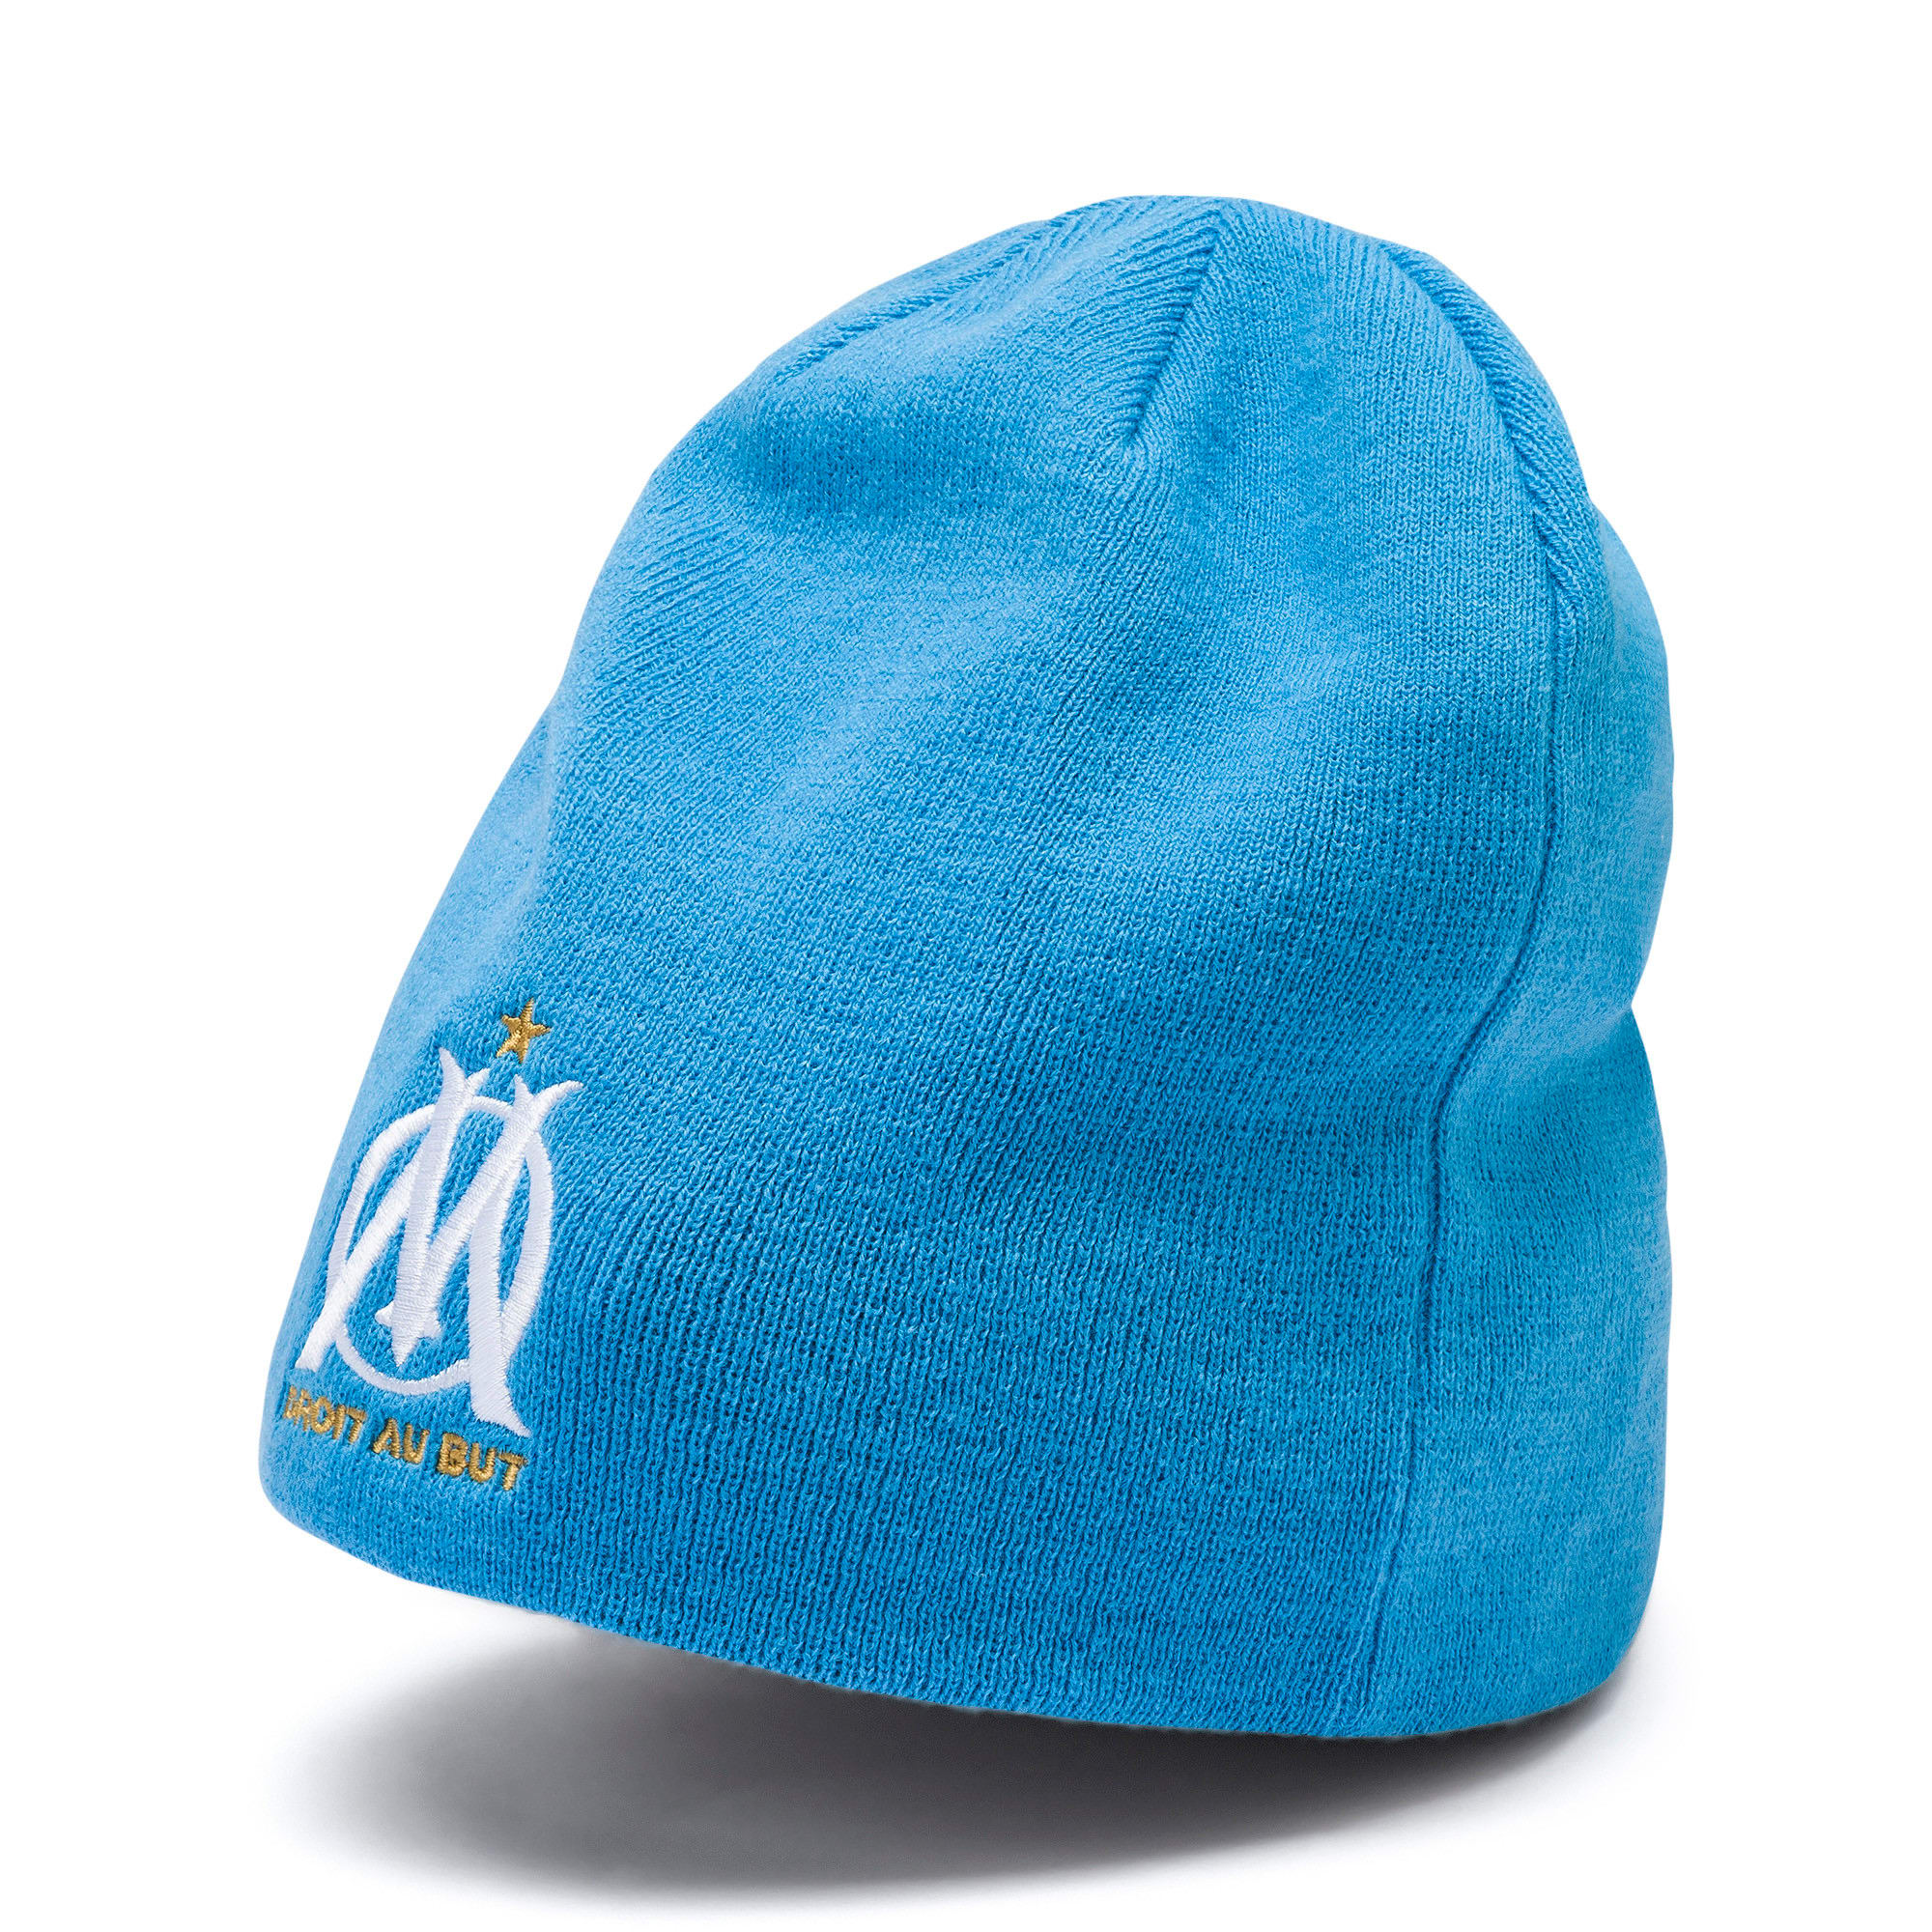 Thumbnail 3 of Bonnet réversible Olympique Marseille, Bleu Azur-Puma White, medium